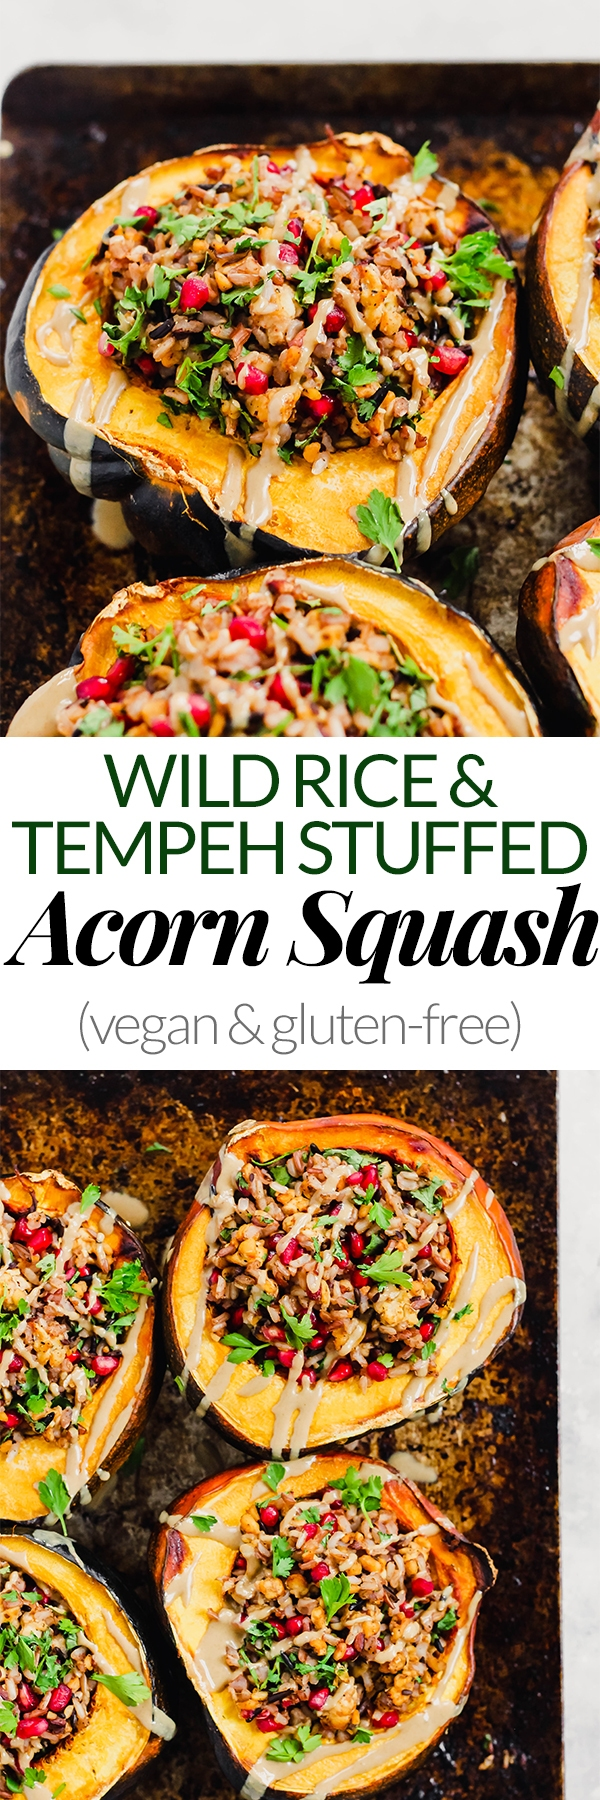 These Wild Rice and Tempeh Stuffed Acorn Squash make a delicious, plant-based side dish for your holiday table! The squash feature pomegranate for a bit of sweetness and a drizzle of tahini to top everything off.